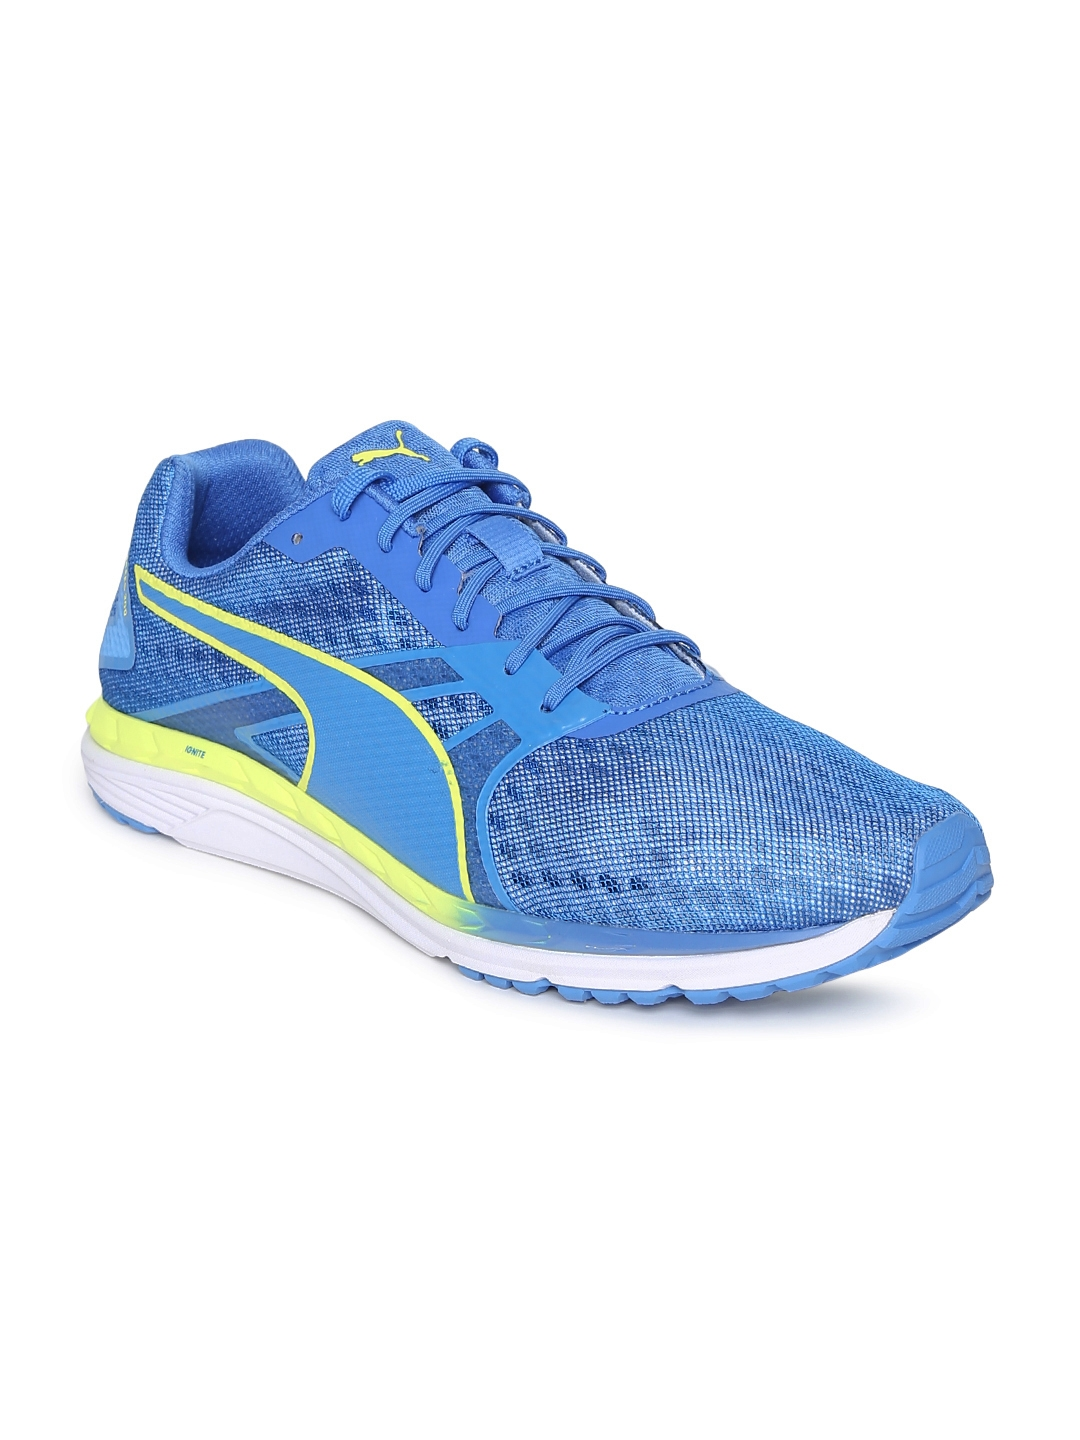 69134faa104c Buy Puma Women Blue Speed 300 IGNITE Running Shoes - Sports Shoes ...